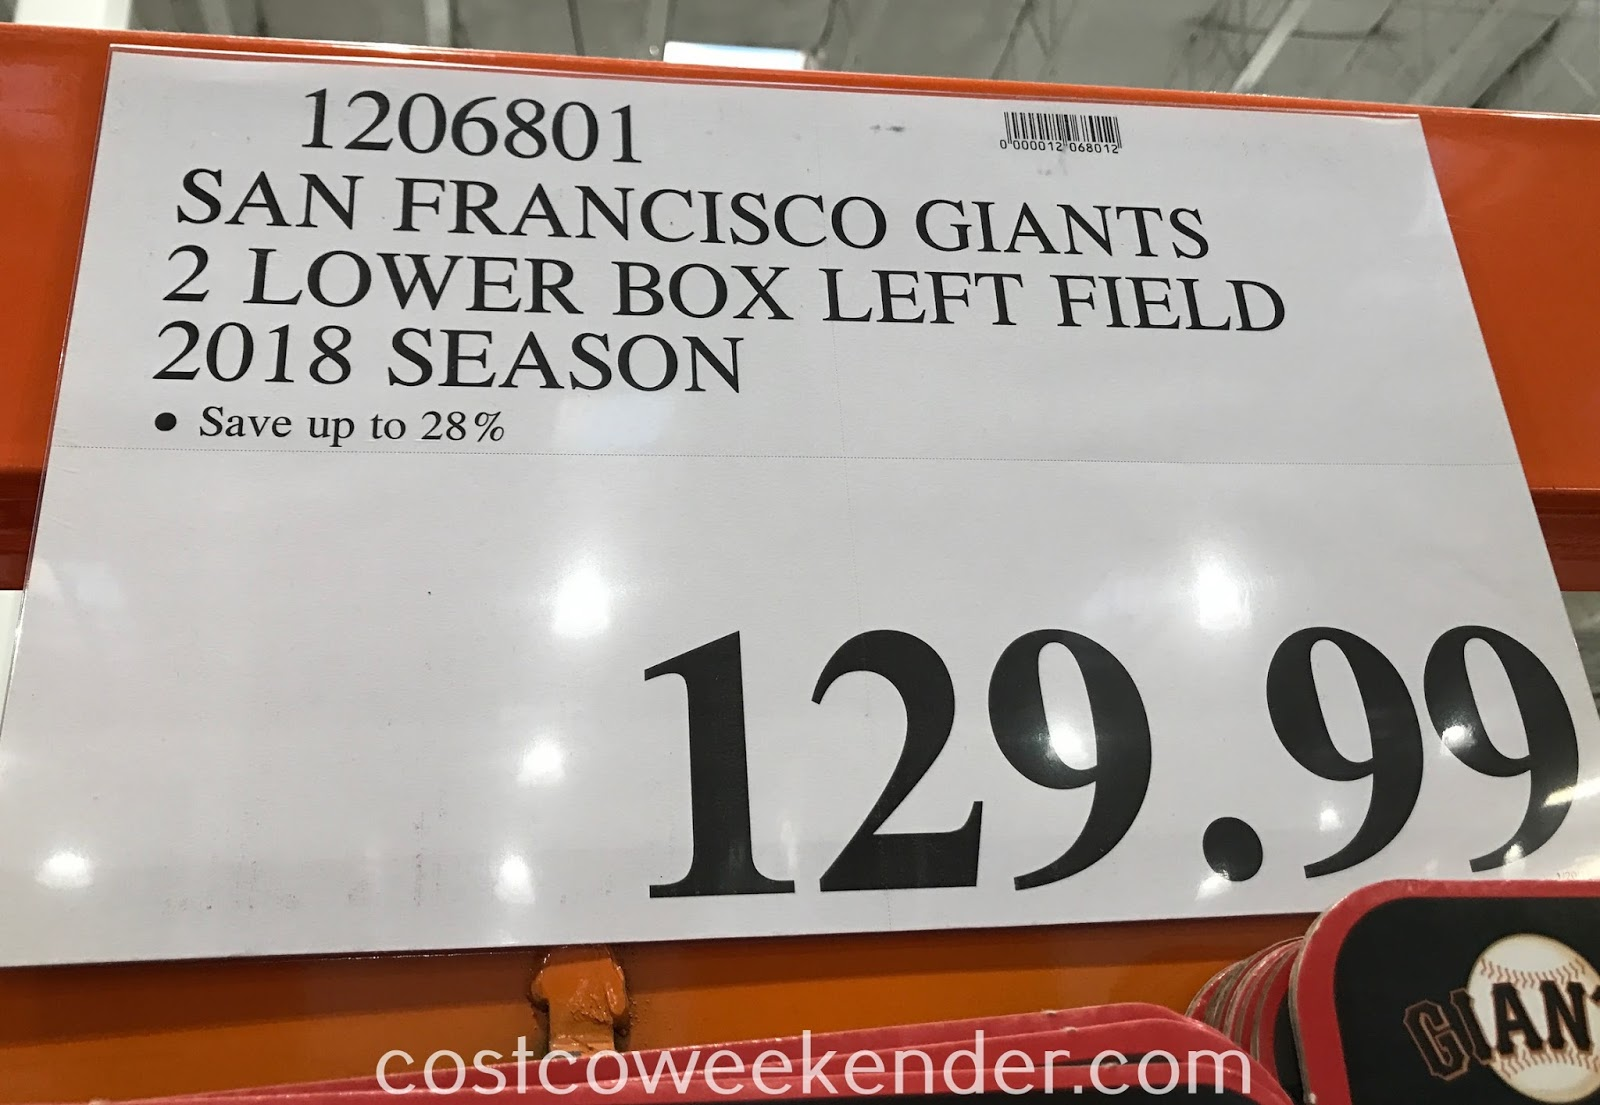 Deal for 2 lower box left field San Francisco Giants tickets for $129.99 at Costco